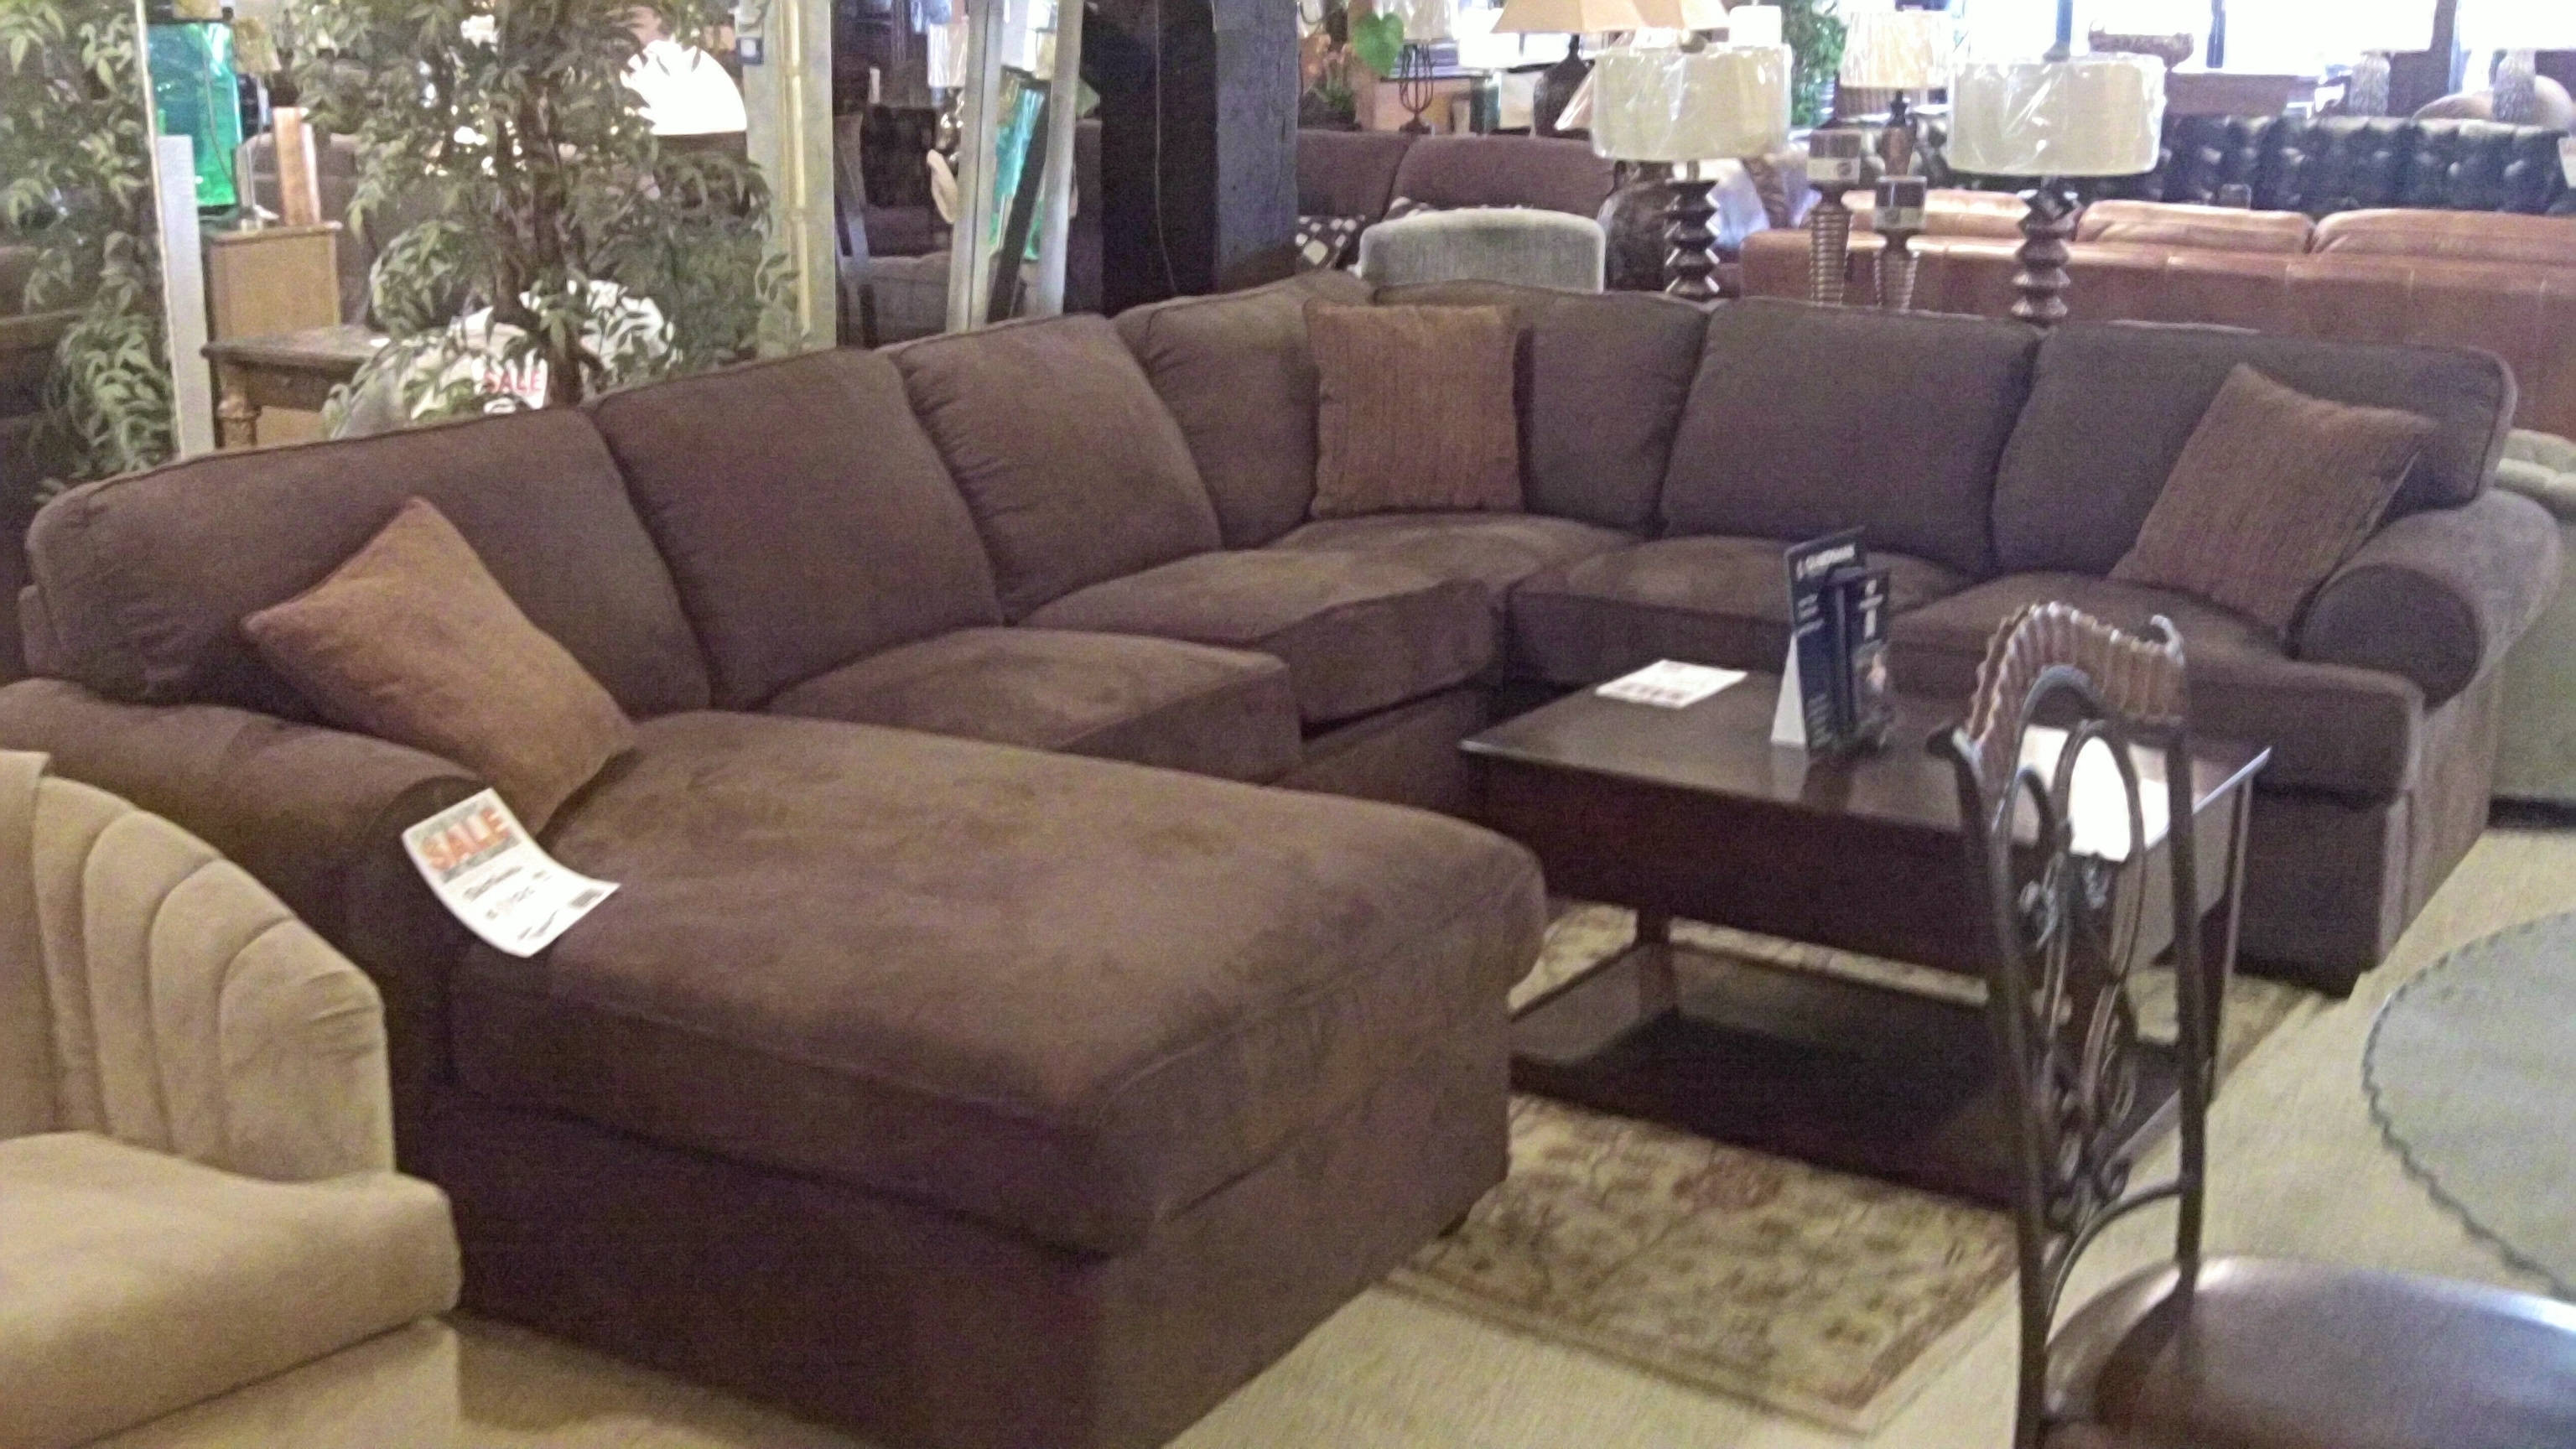 Jcpenney Sectional Sofas | Catosfera Within Jcpenney Sectional Sofas (View 4 of 10)